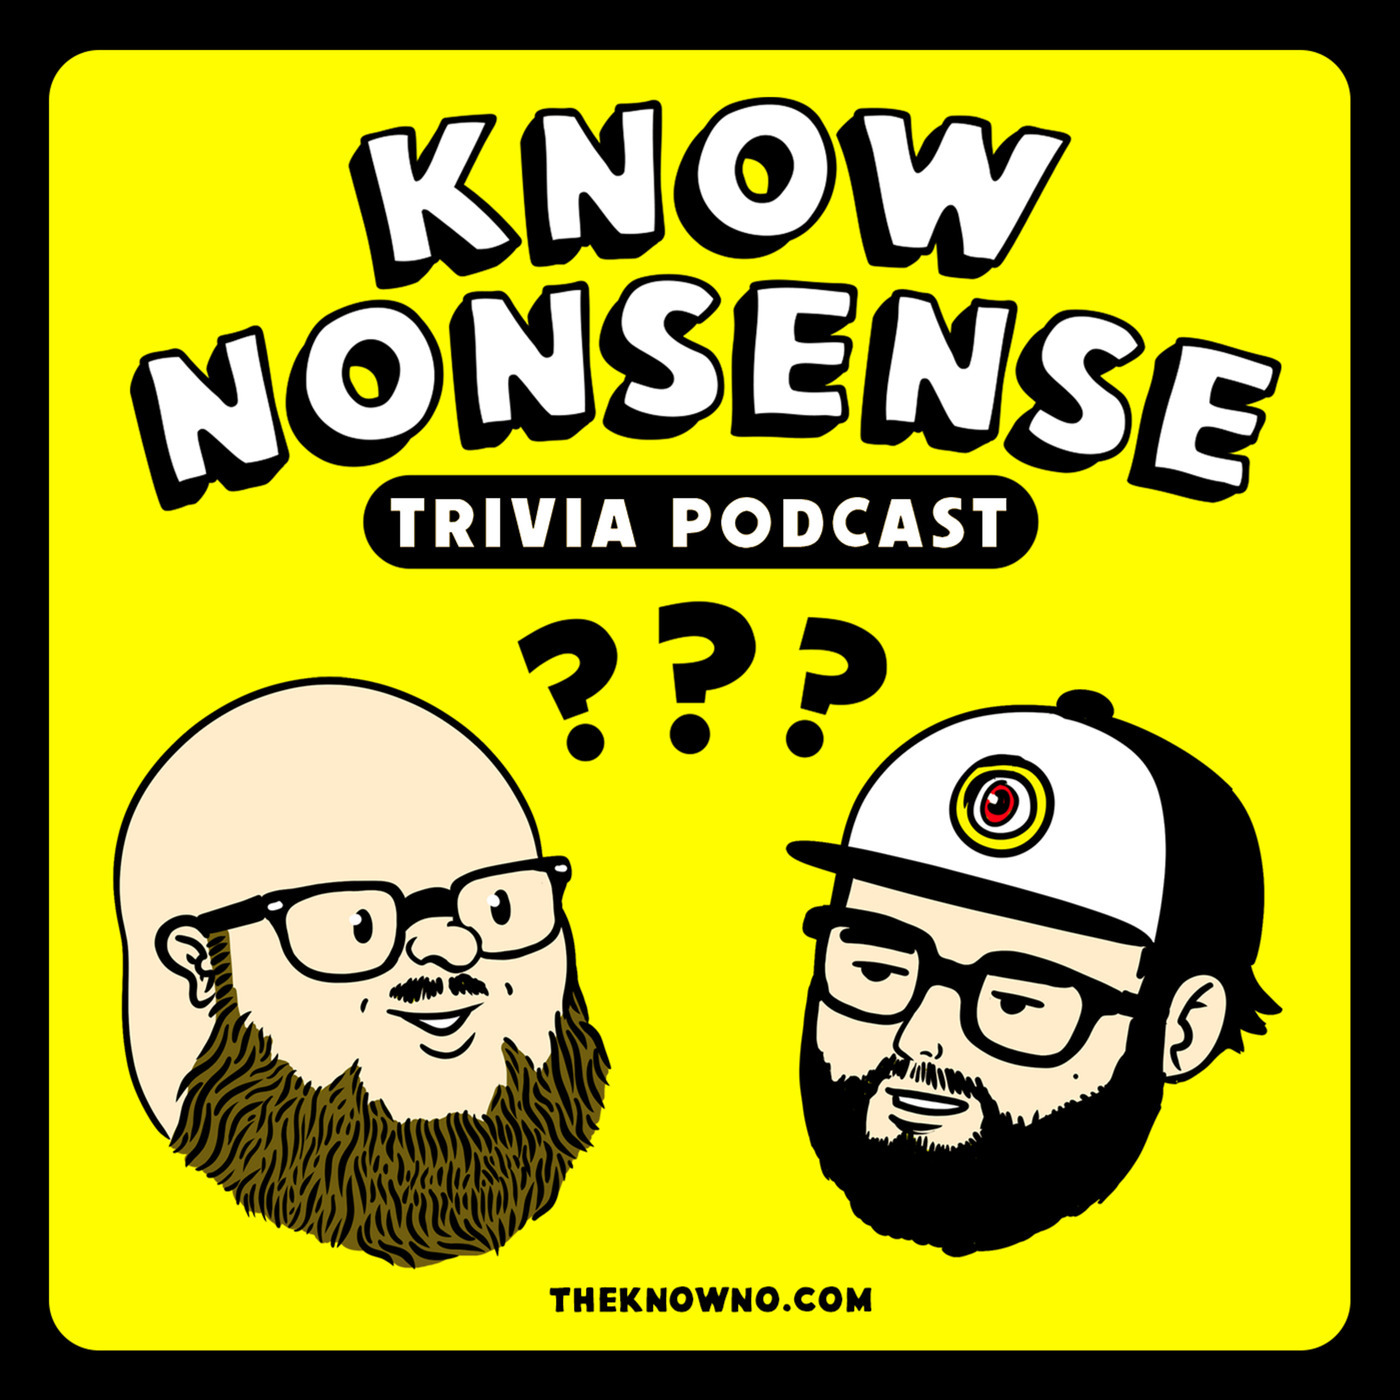 Know Nonsense Trivia Podcast Episode 61: Pangolin: The New